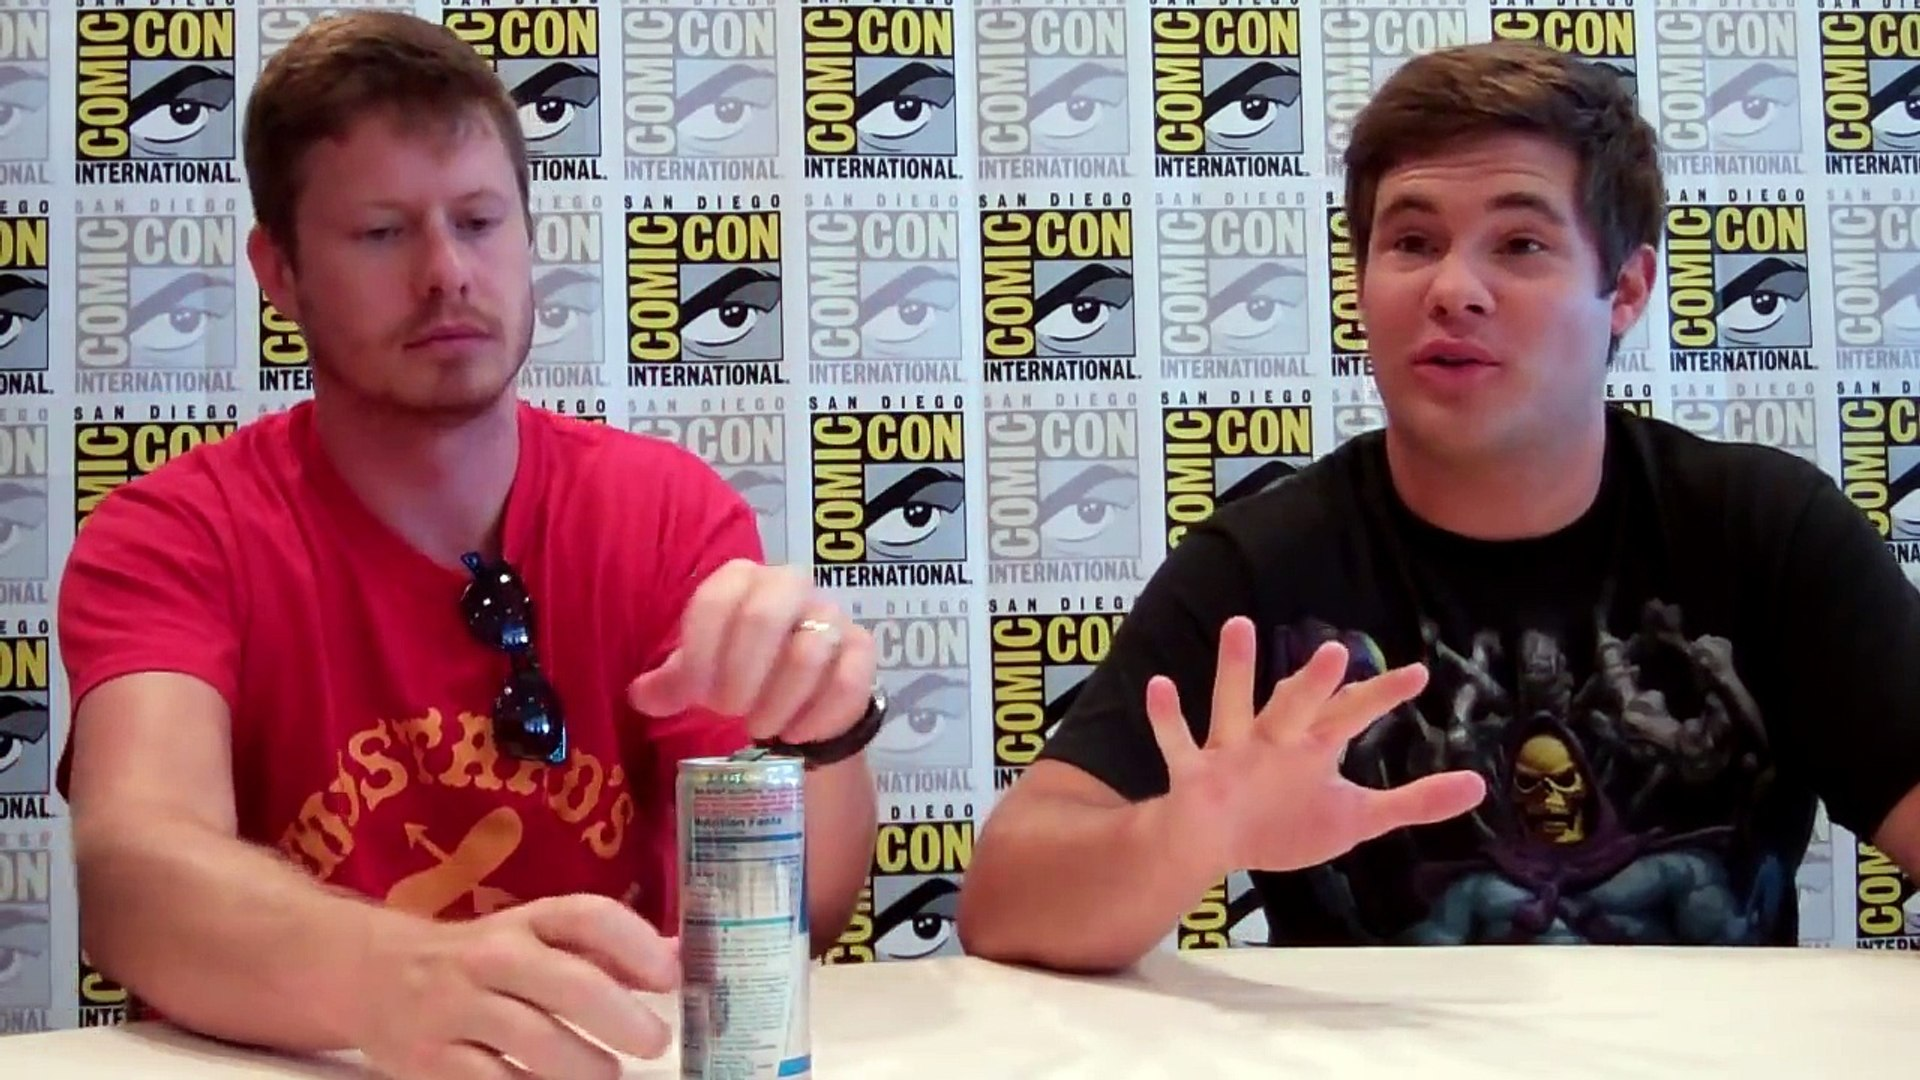 Workaholics Talk About Pokemon, Lori Beth Denberg, Spoilers and MORE at Comic-Con 2012!